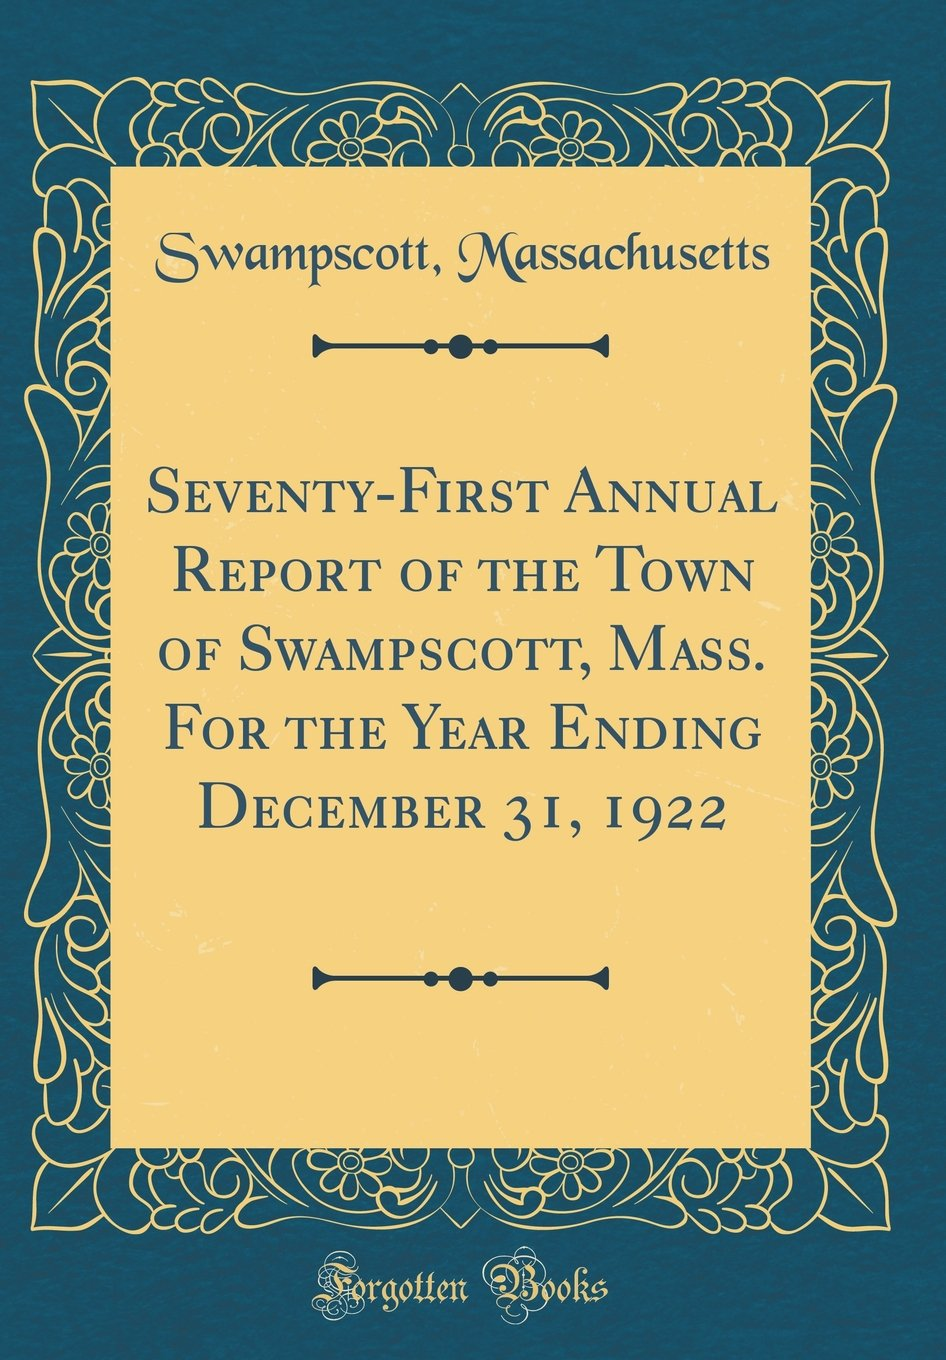 Seventy-First Annual Report of the Town of Swampscott, Mass. for the Year Ending December 31, 1922 (Classic Reprint) PDF